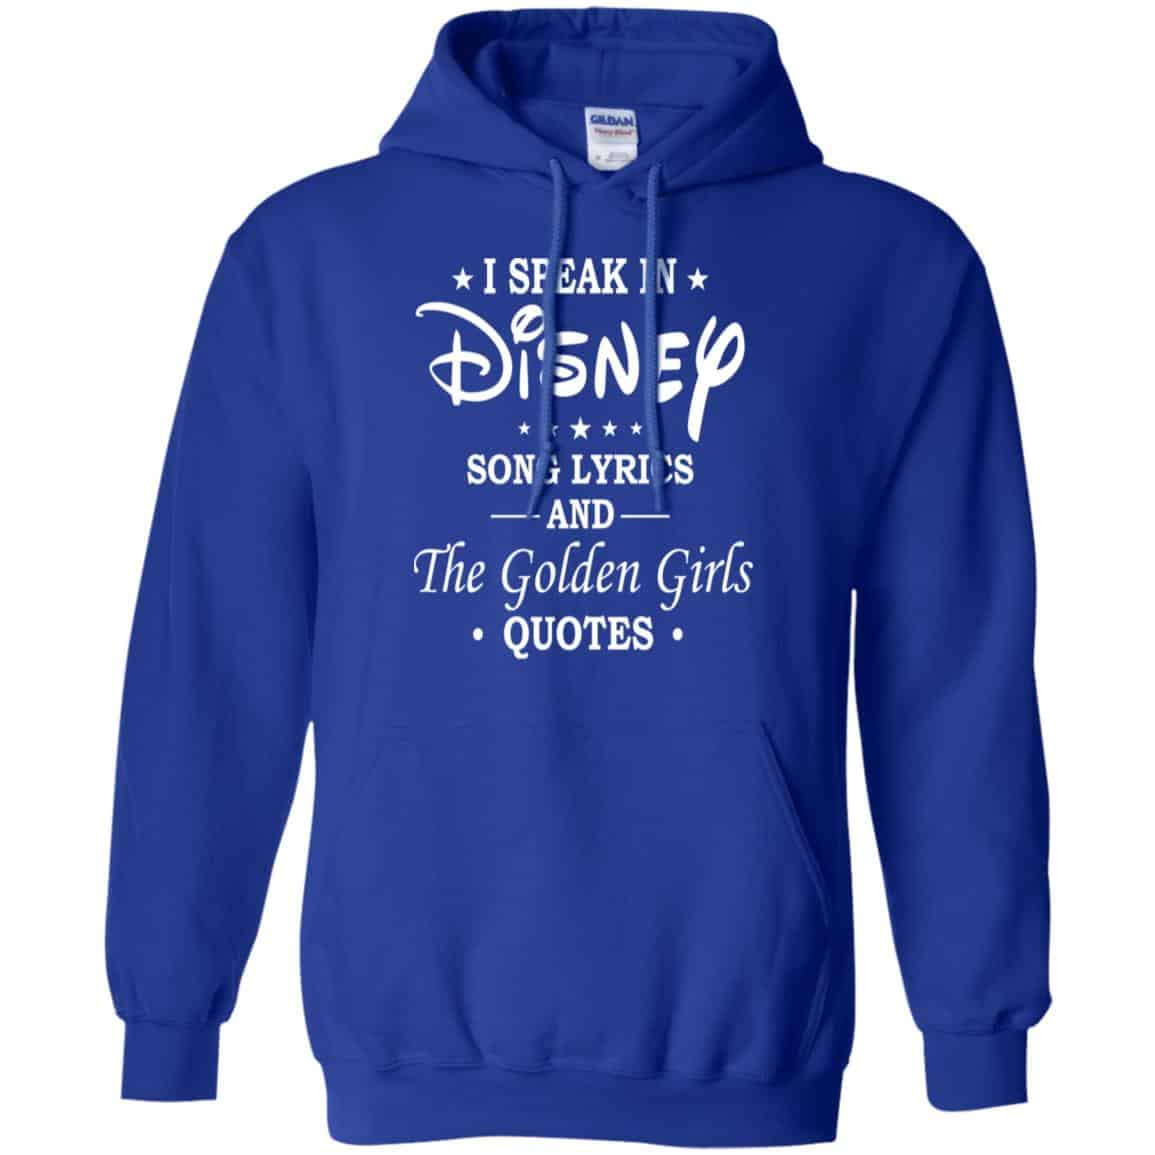 I Speak In Disney Song Lyrics And The Golden Girls Quotes Shirt Hoodie Tank 0stees